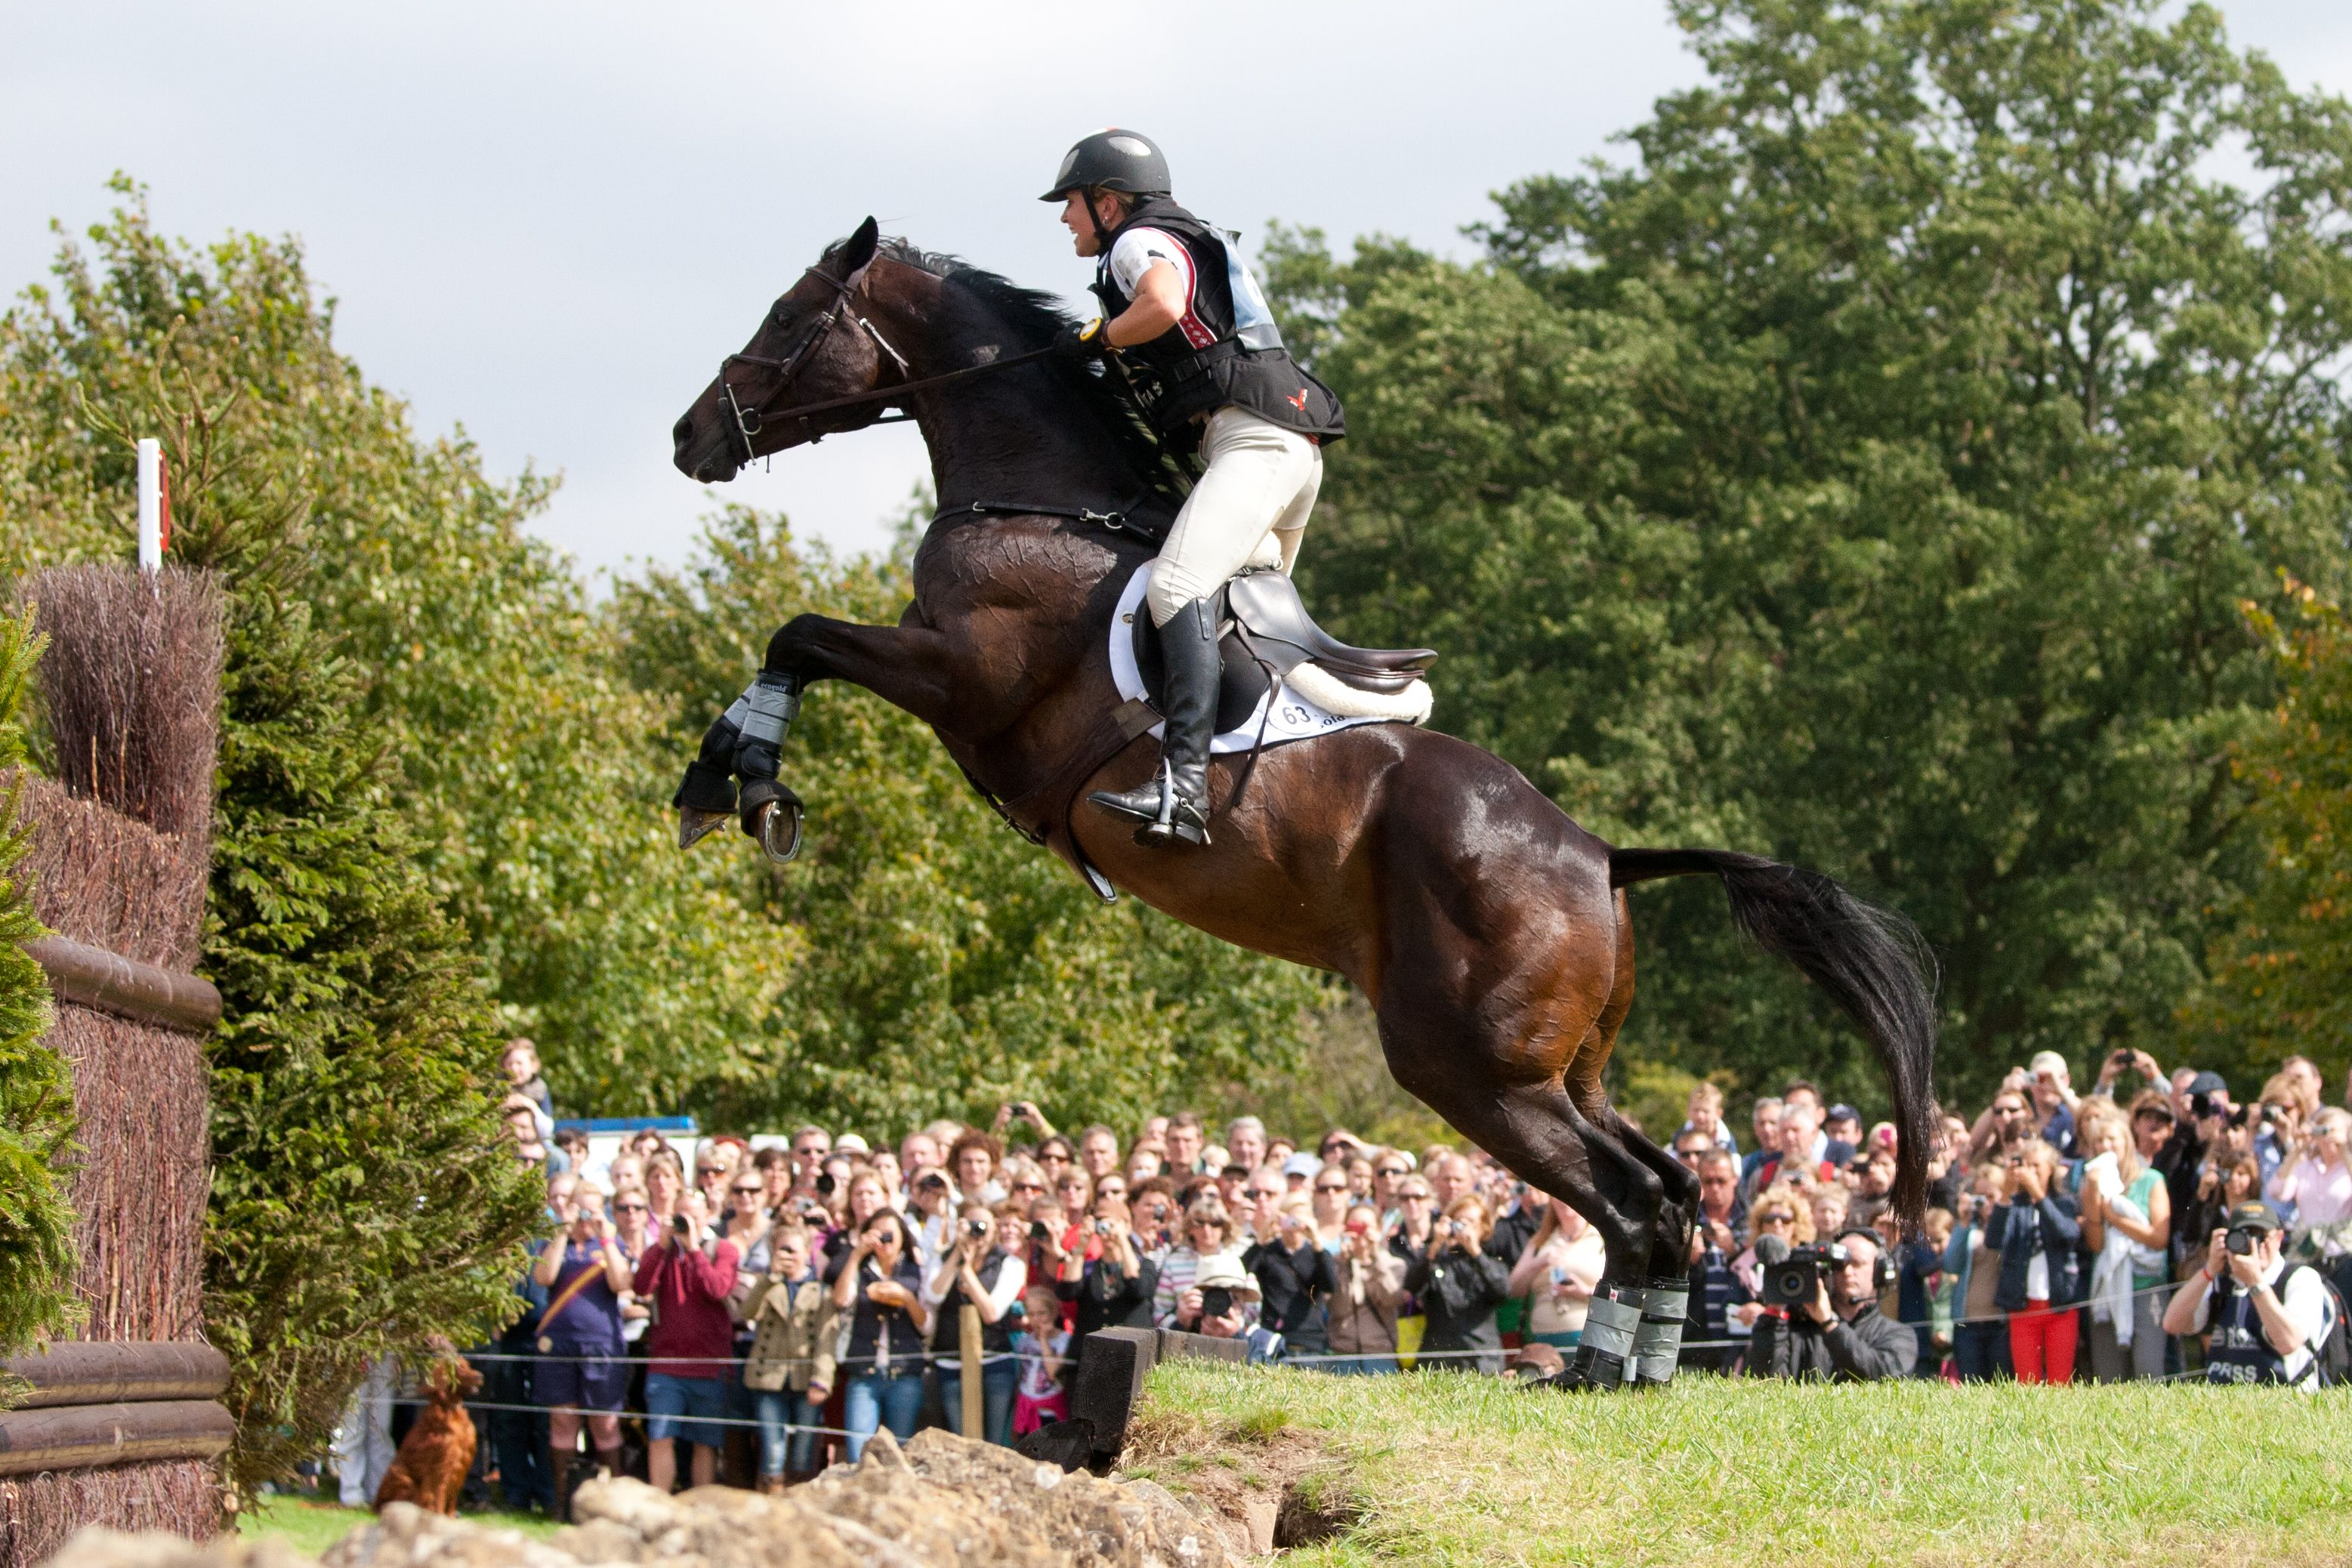 Horses jumping cross country - photo#53